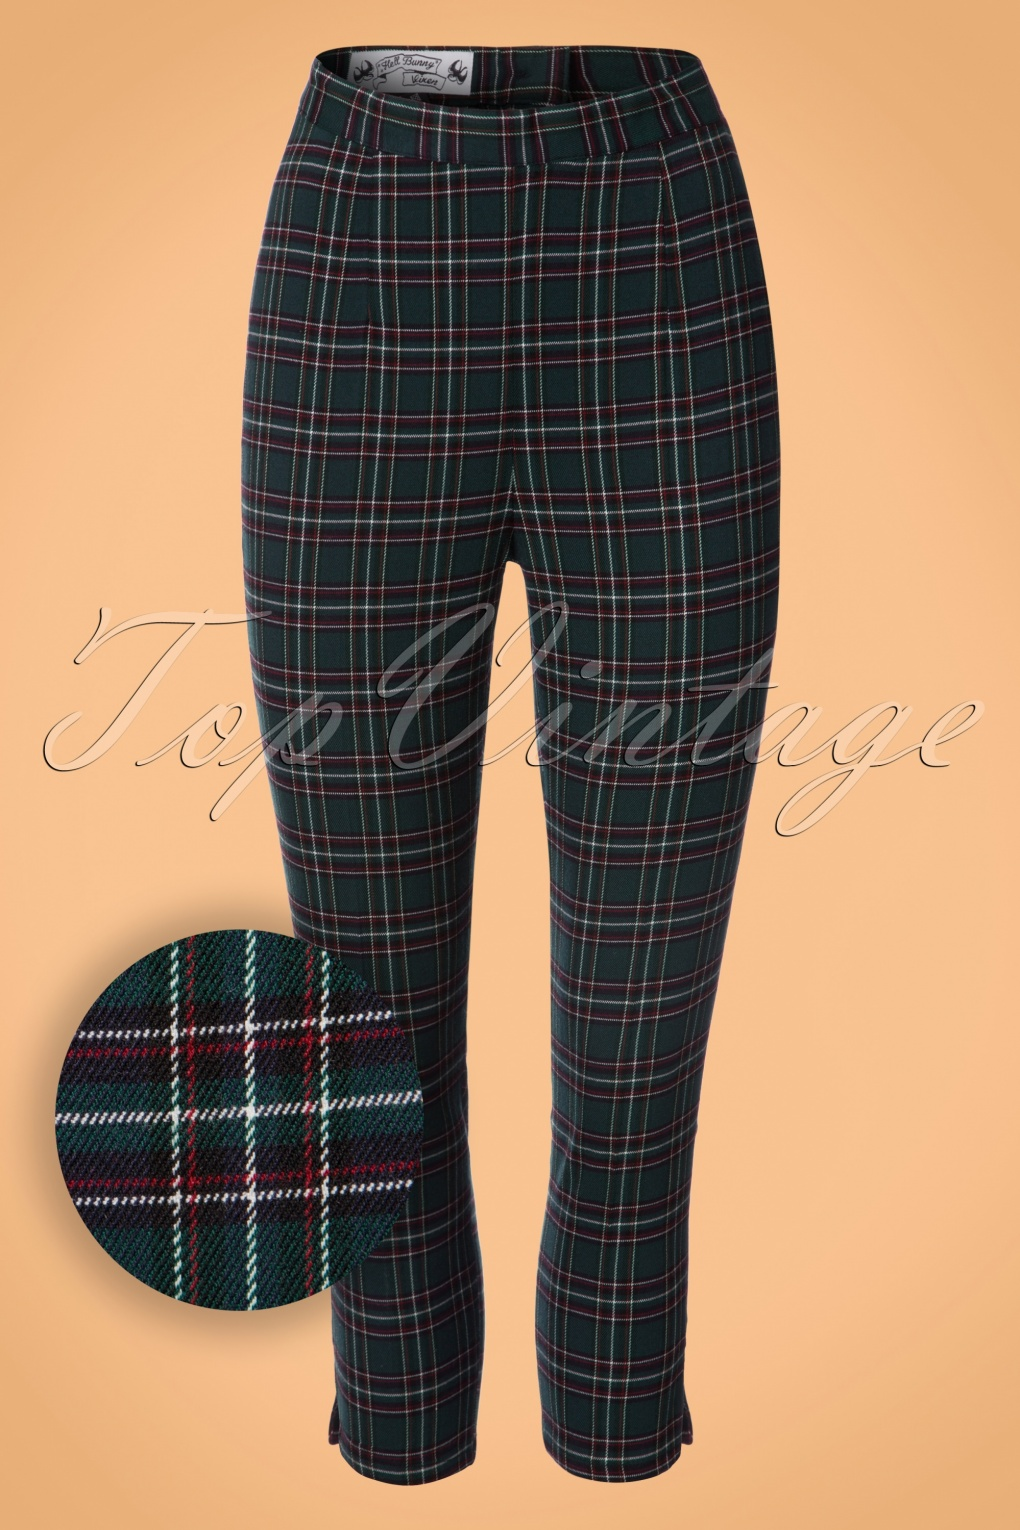 1950s Pants History for Women 50s Peebles Tartan Cigarette Trousers in Green £27.25 AT vintagedancer.com